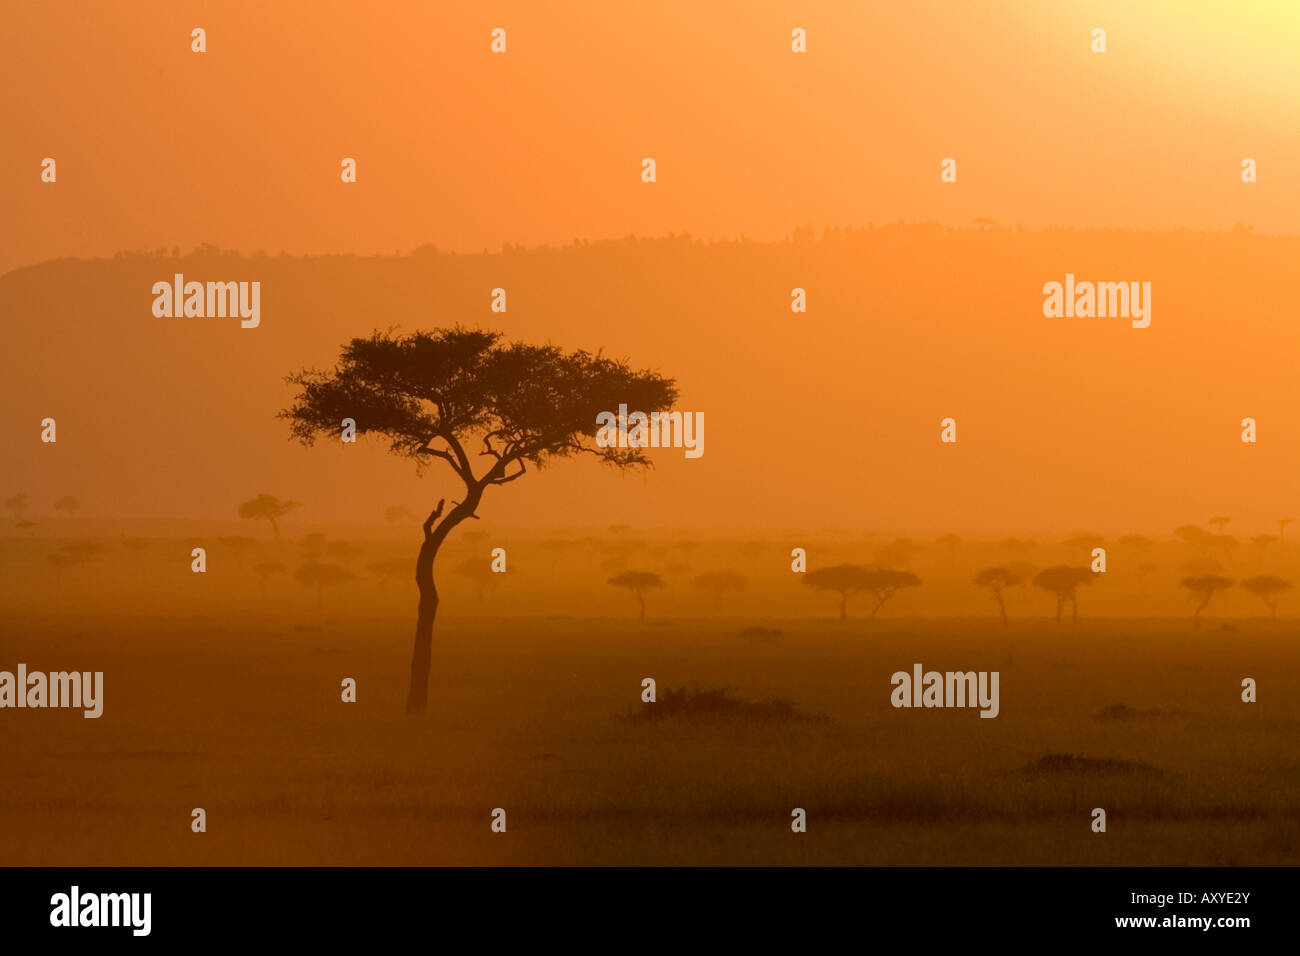 Acacia tree at sunset, Masai Mara National Reserve, Kenya, East Africa, Africa - Stock Image